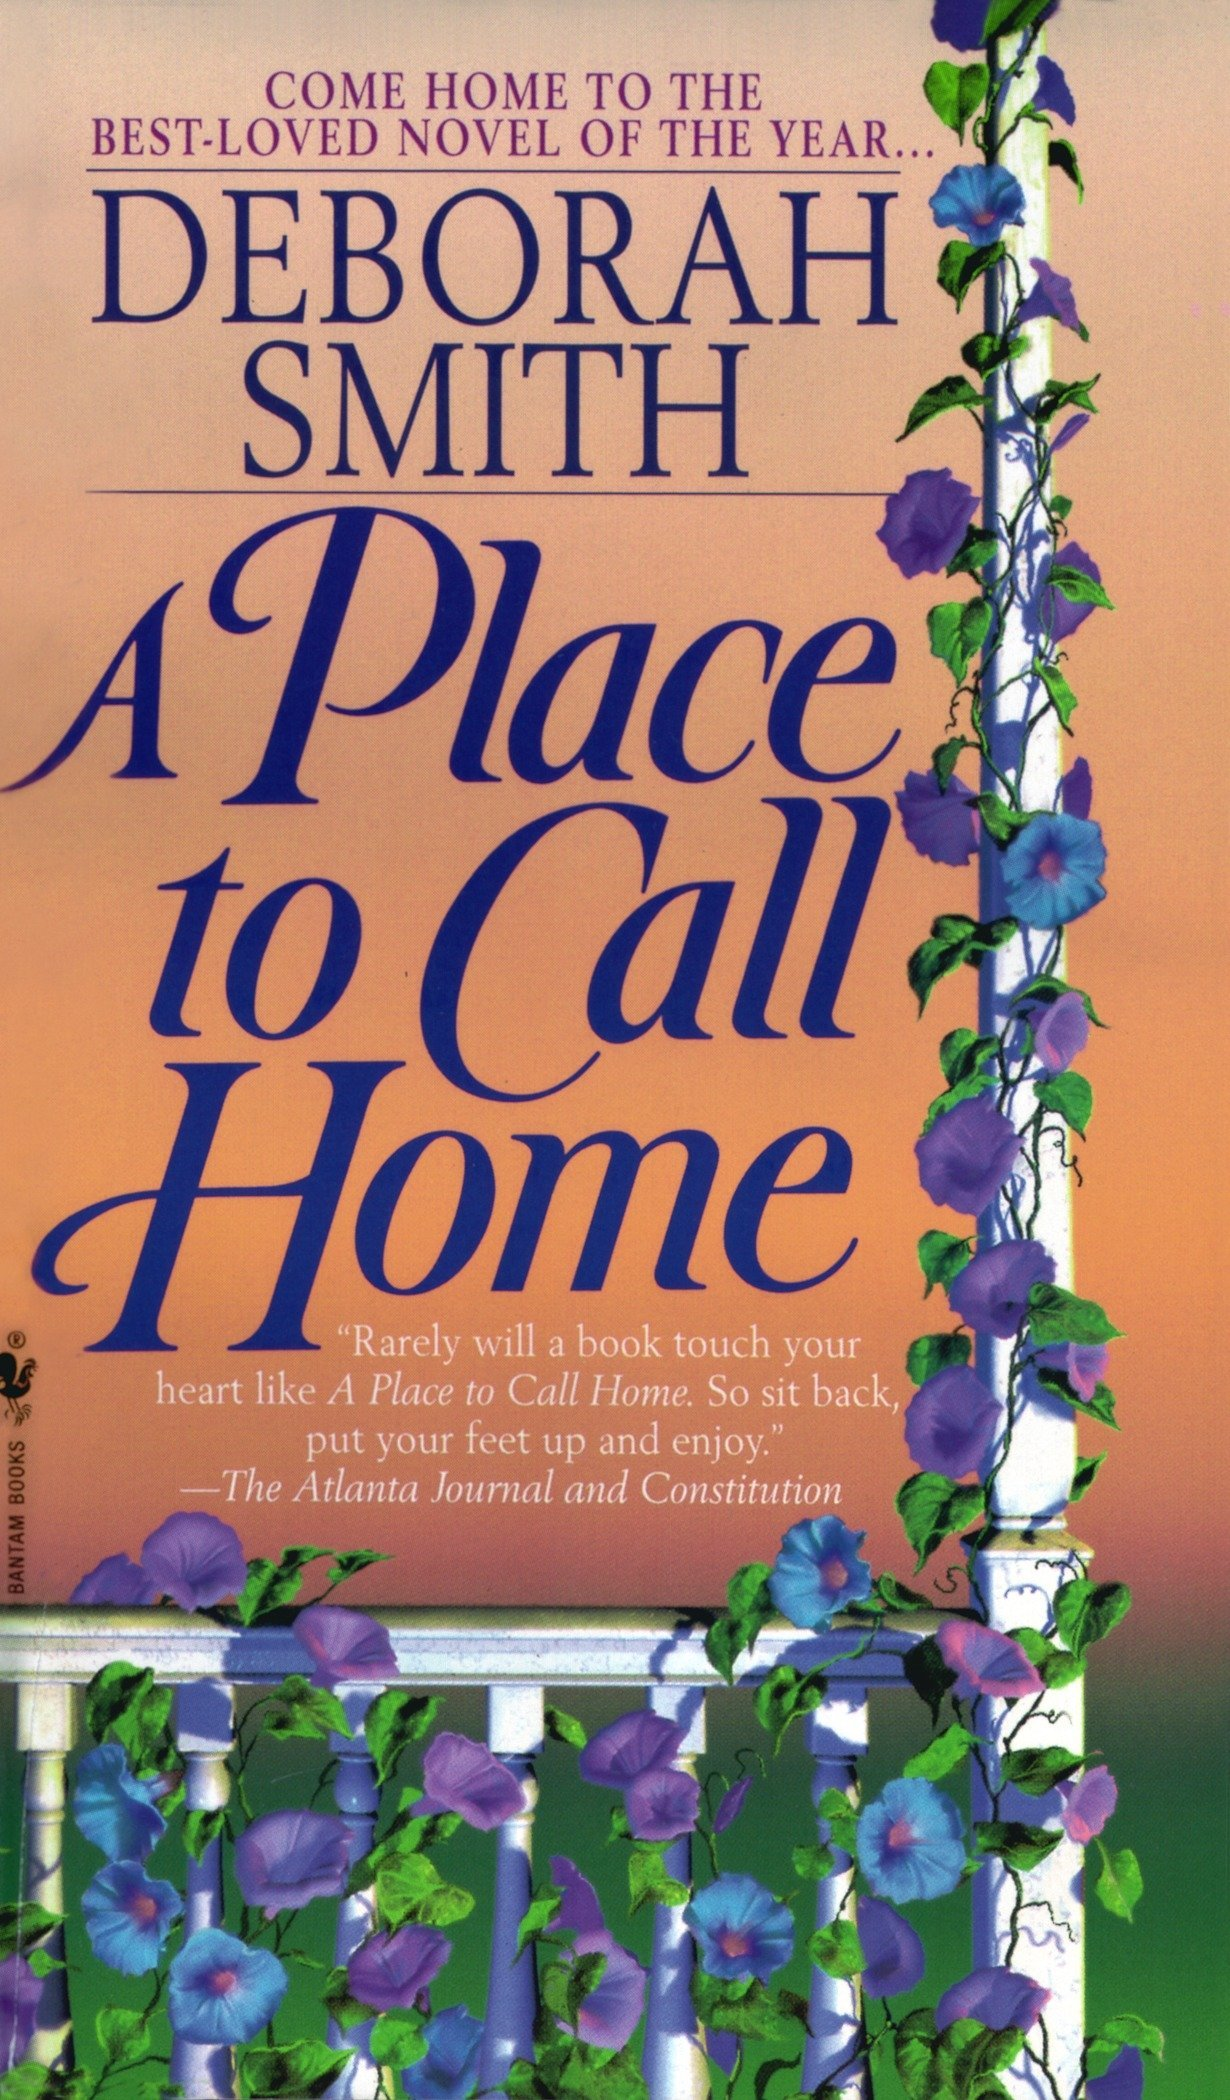 a place to call home series 1 buy online drama buy a place to call home Follow the Author